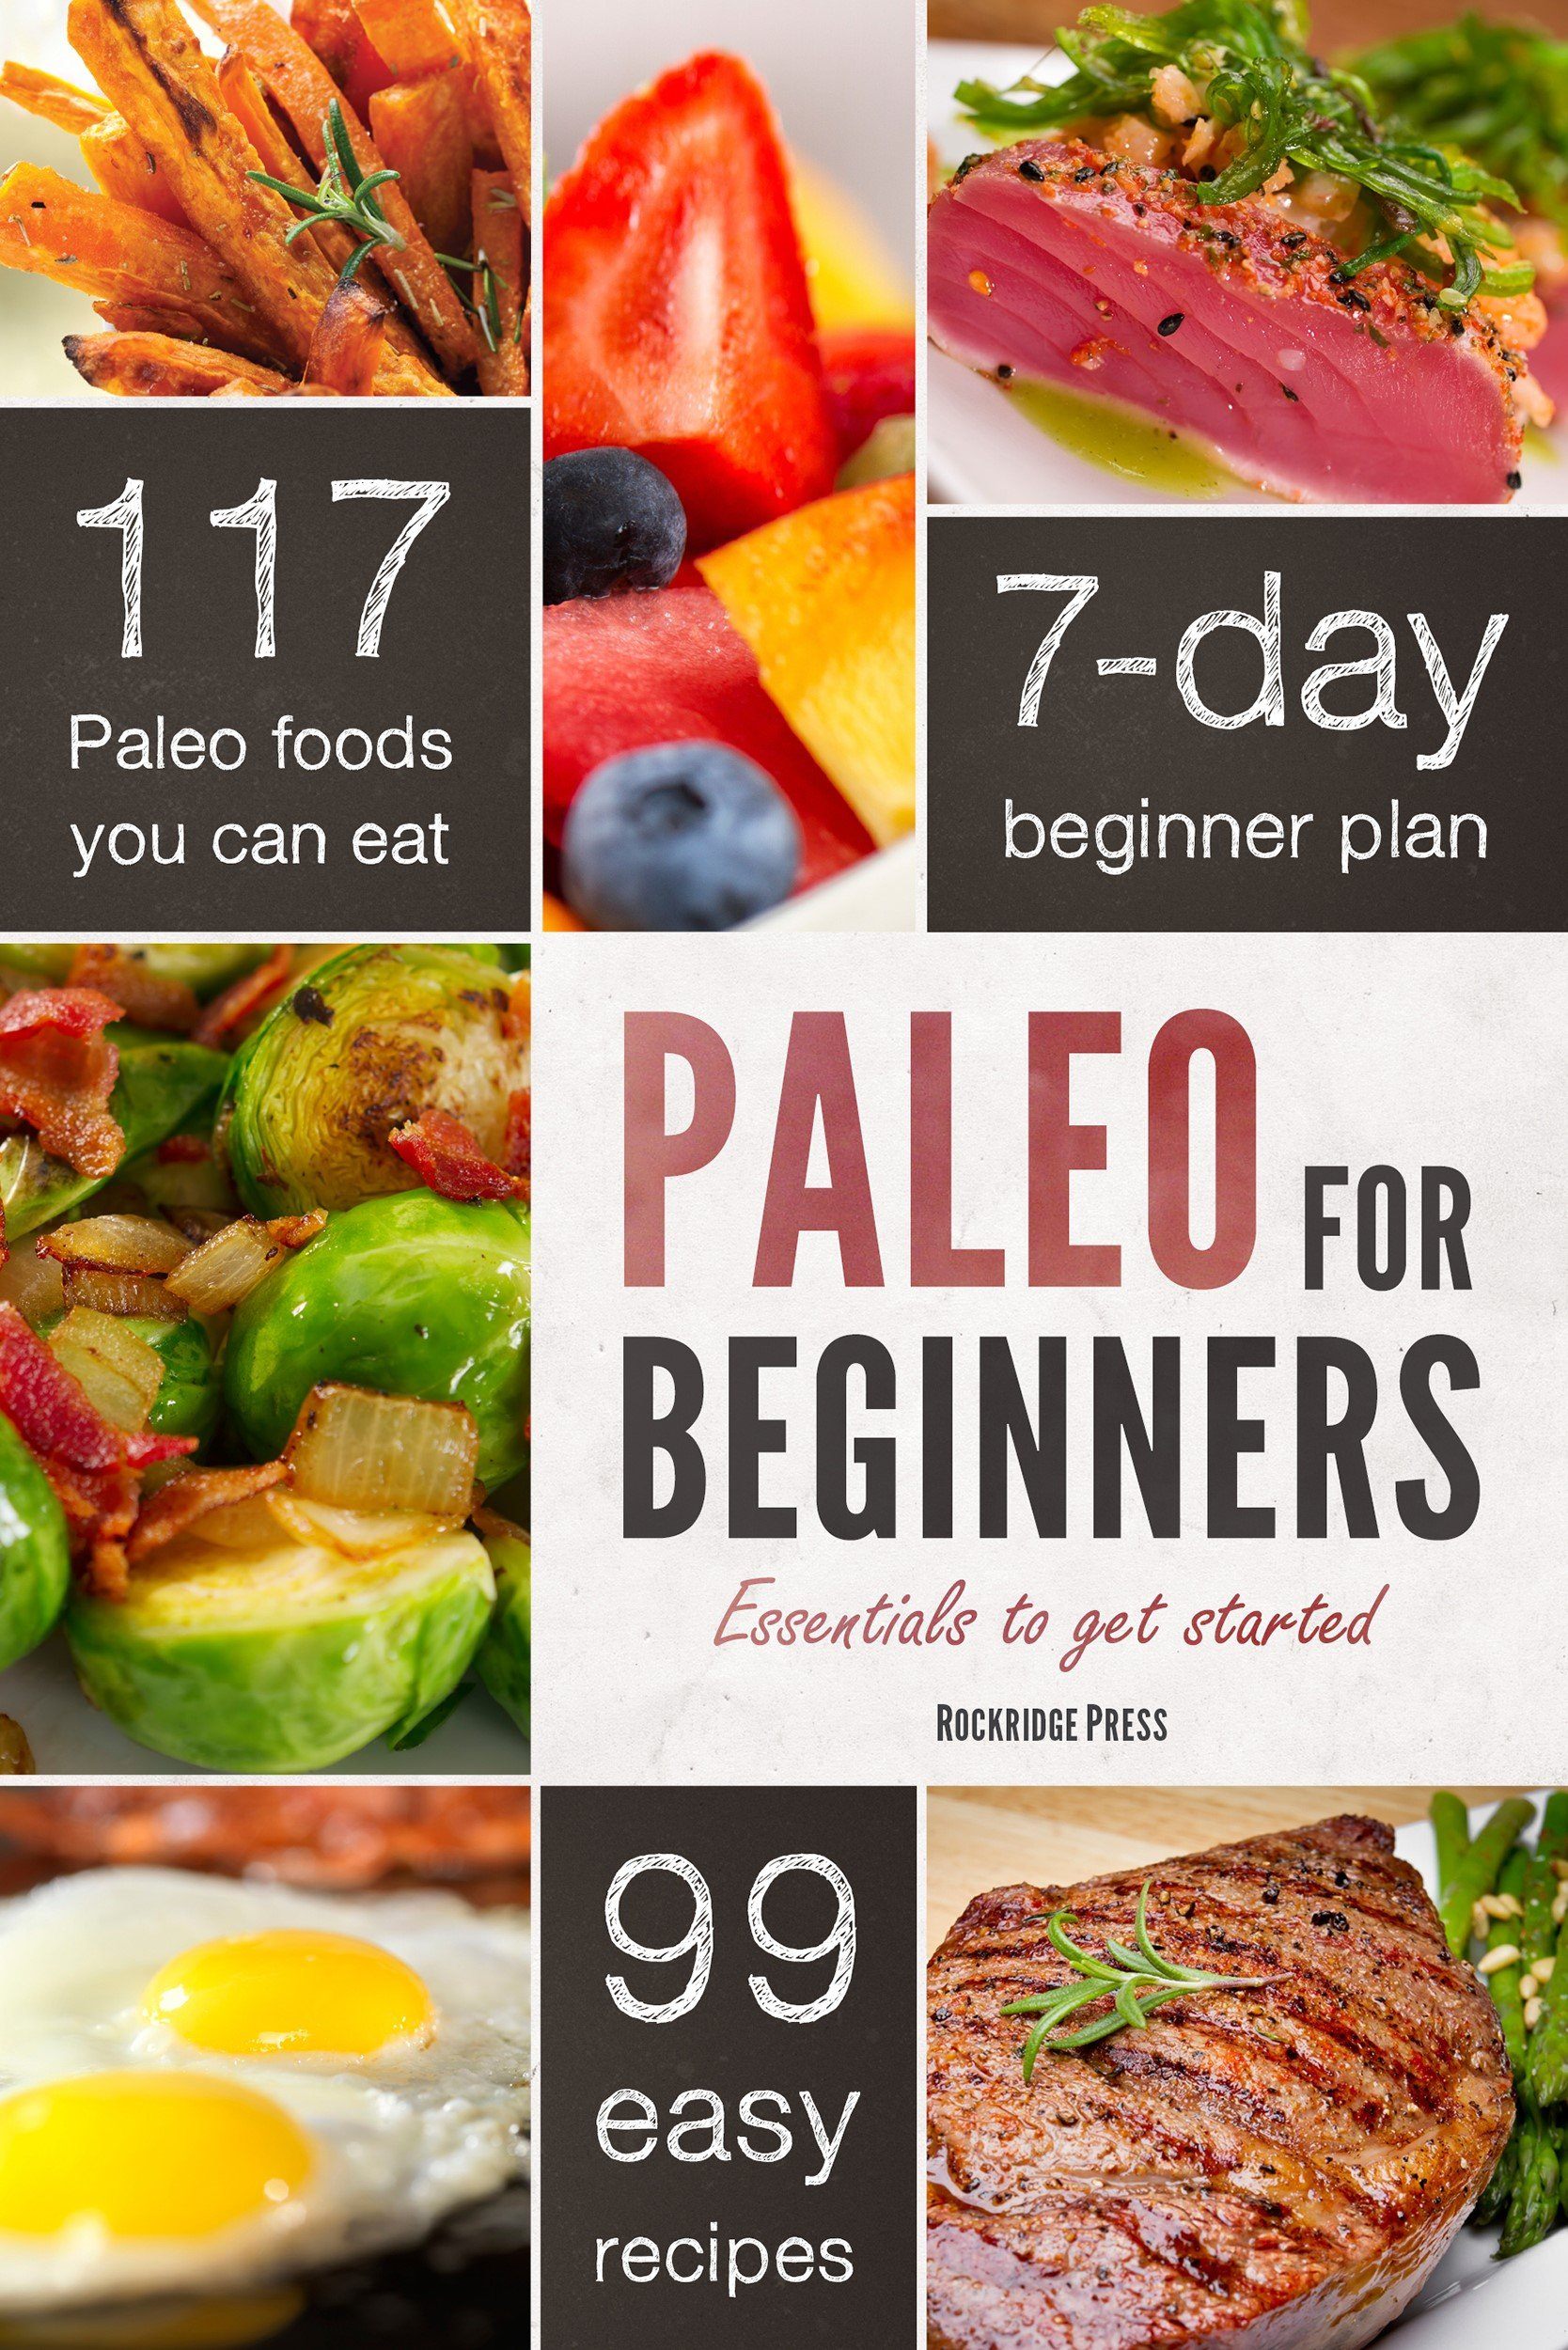 Paleo for Beginners Diet Book